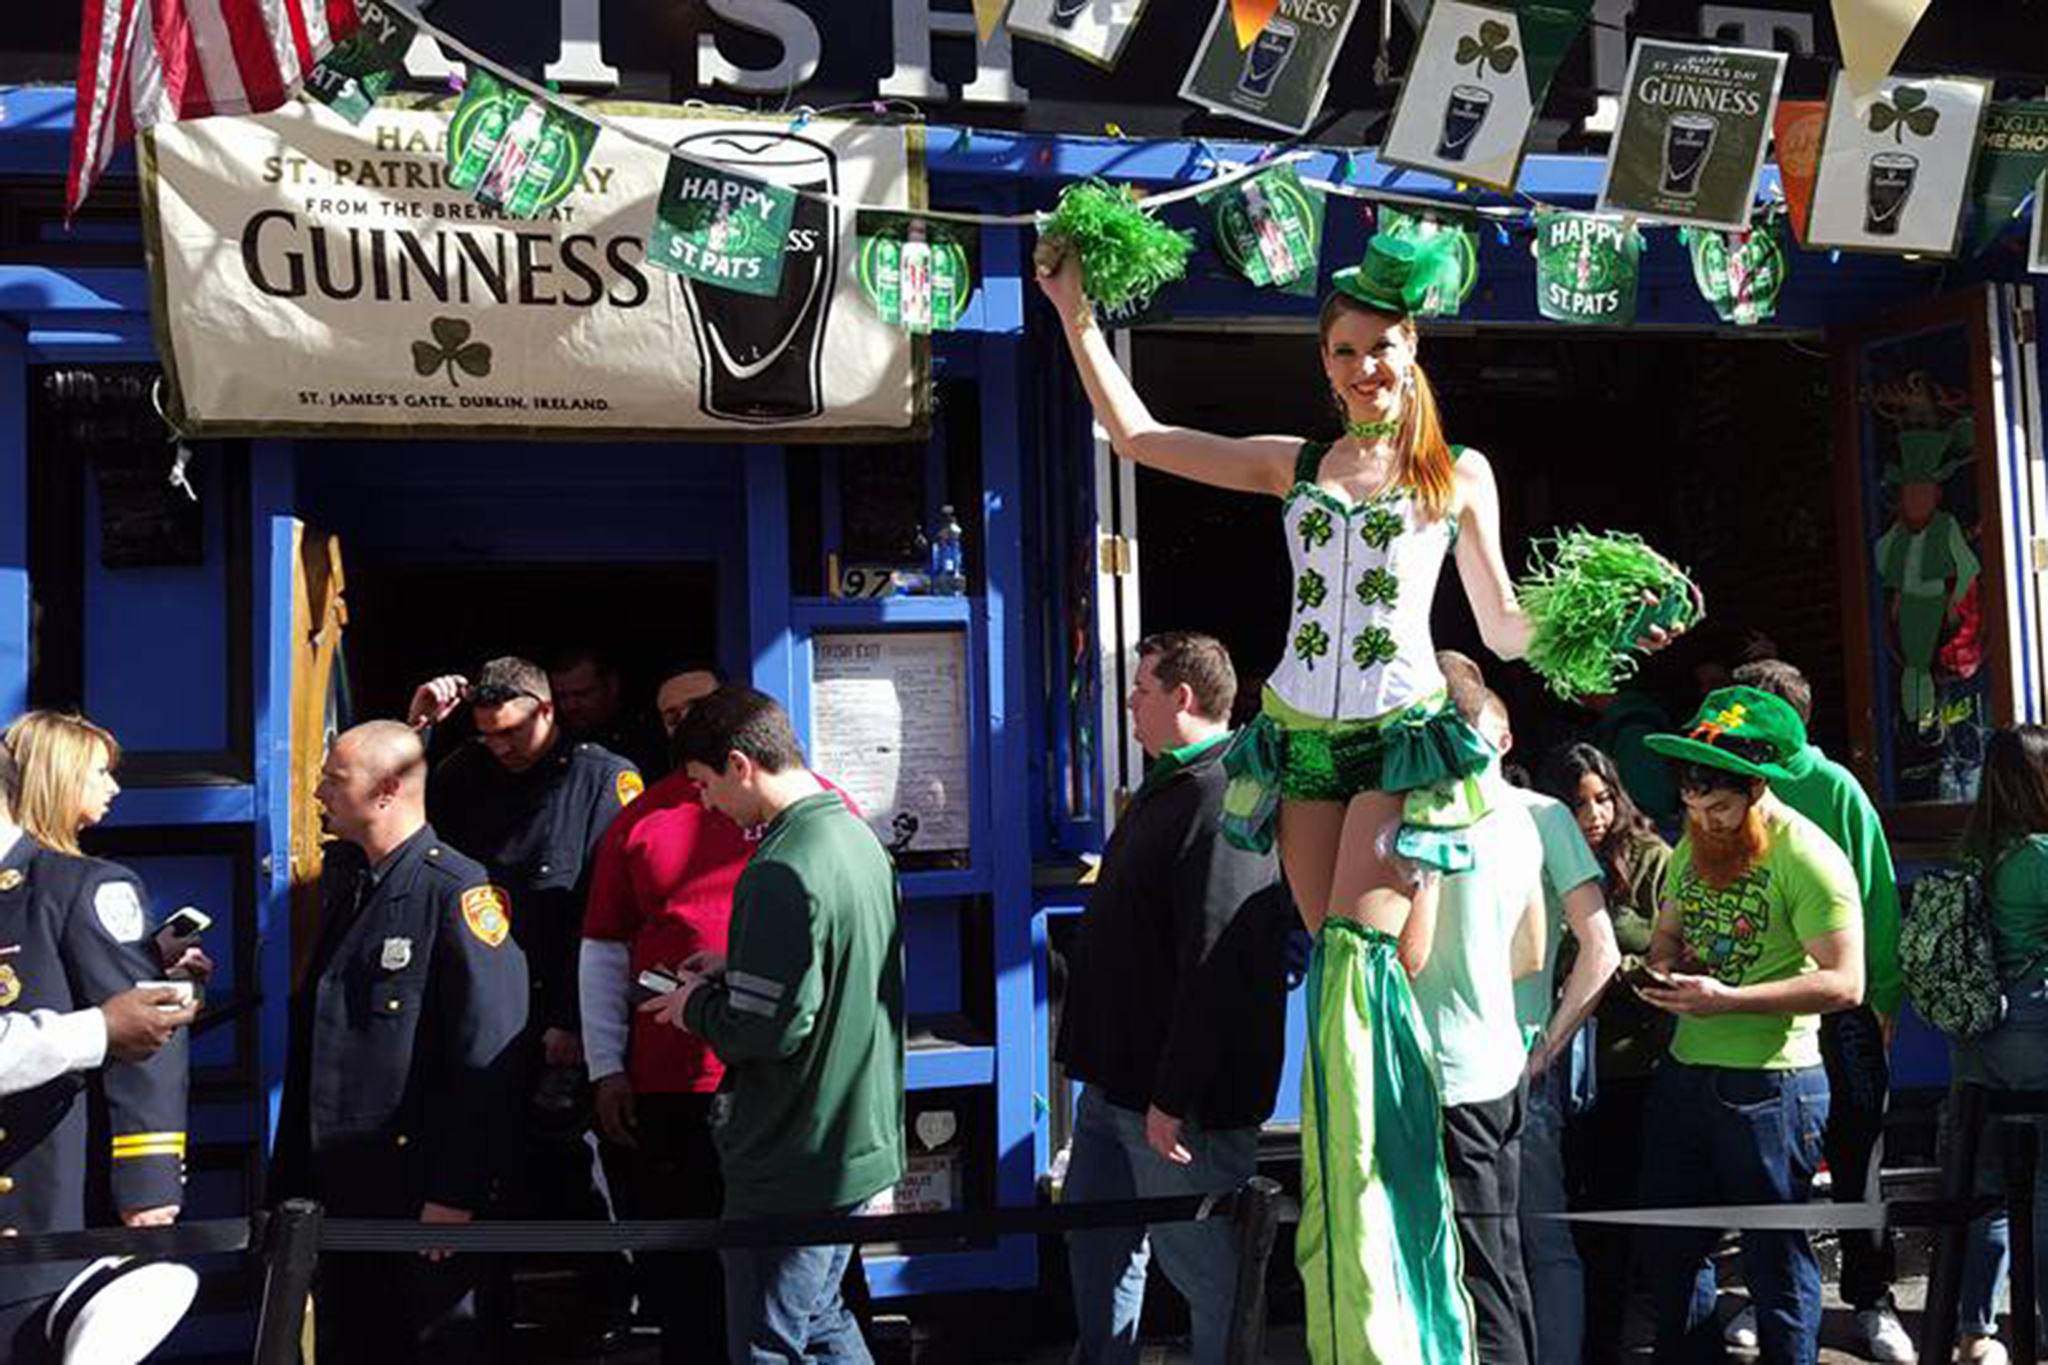 96cec6ee4 St. Patrick's Day in NYC Guide Including Irish Pubs and More